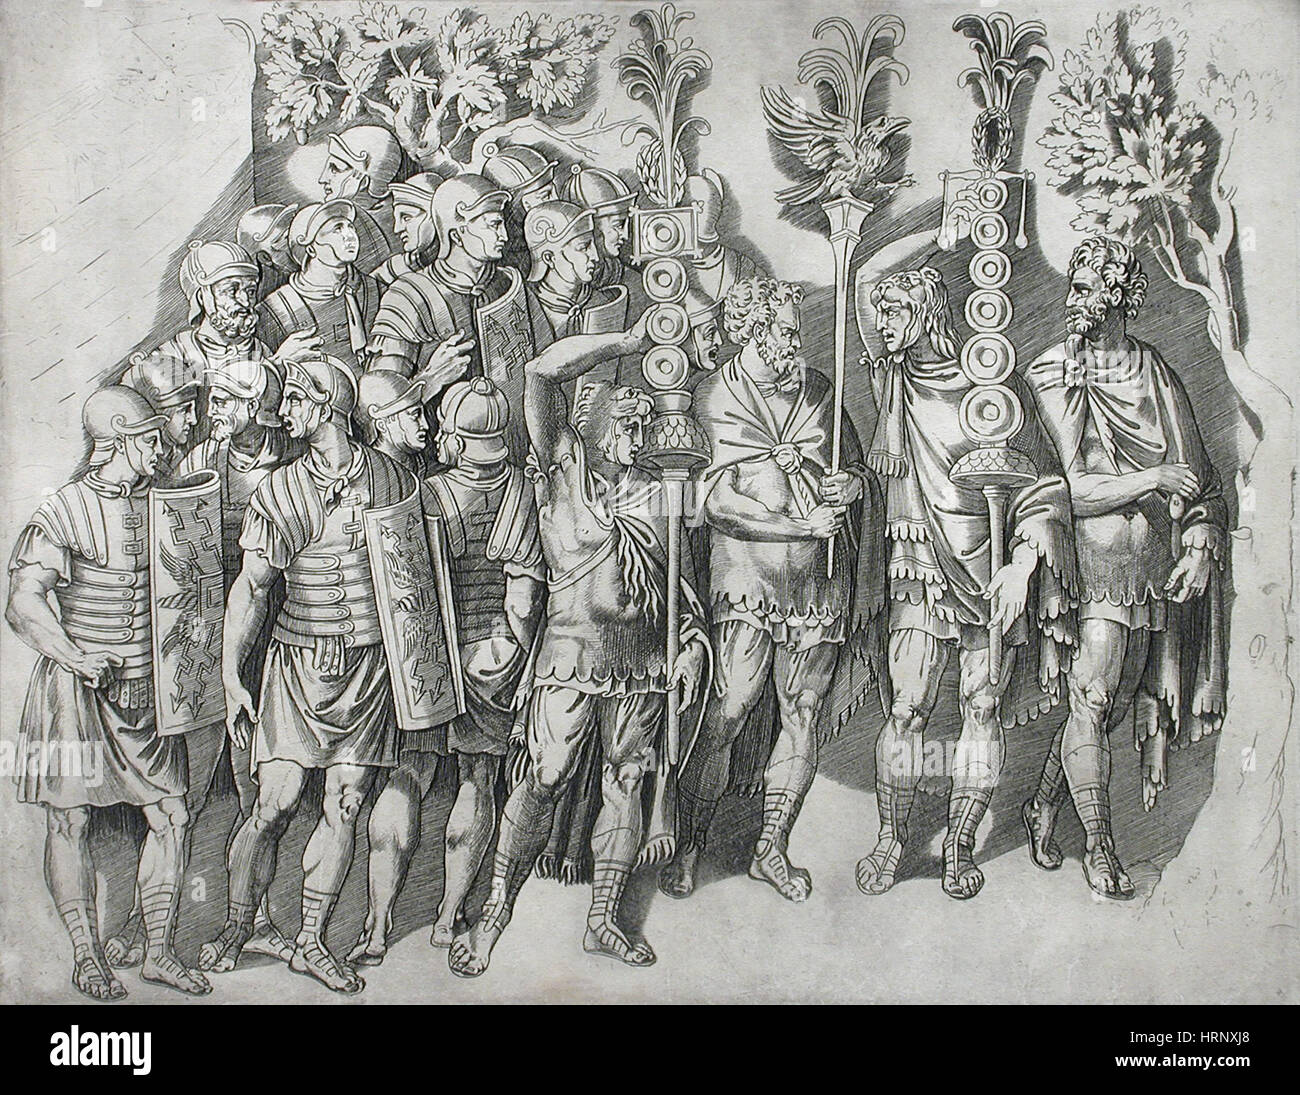 Roman Legion - Stock Image